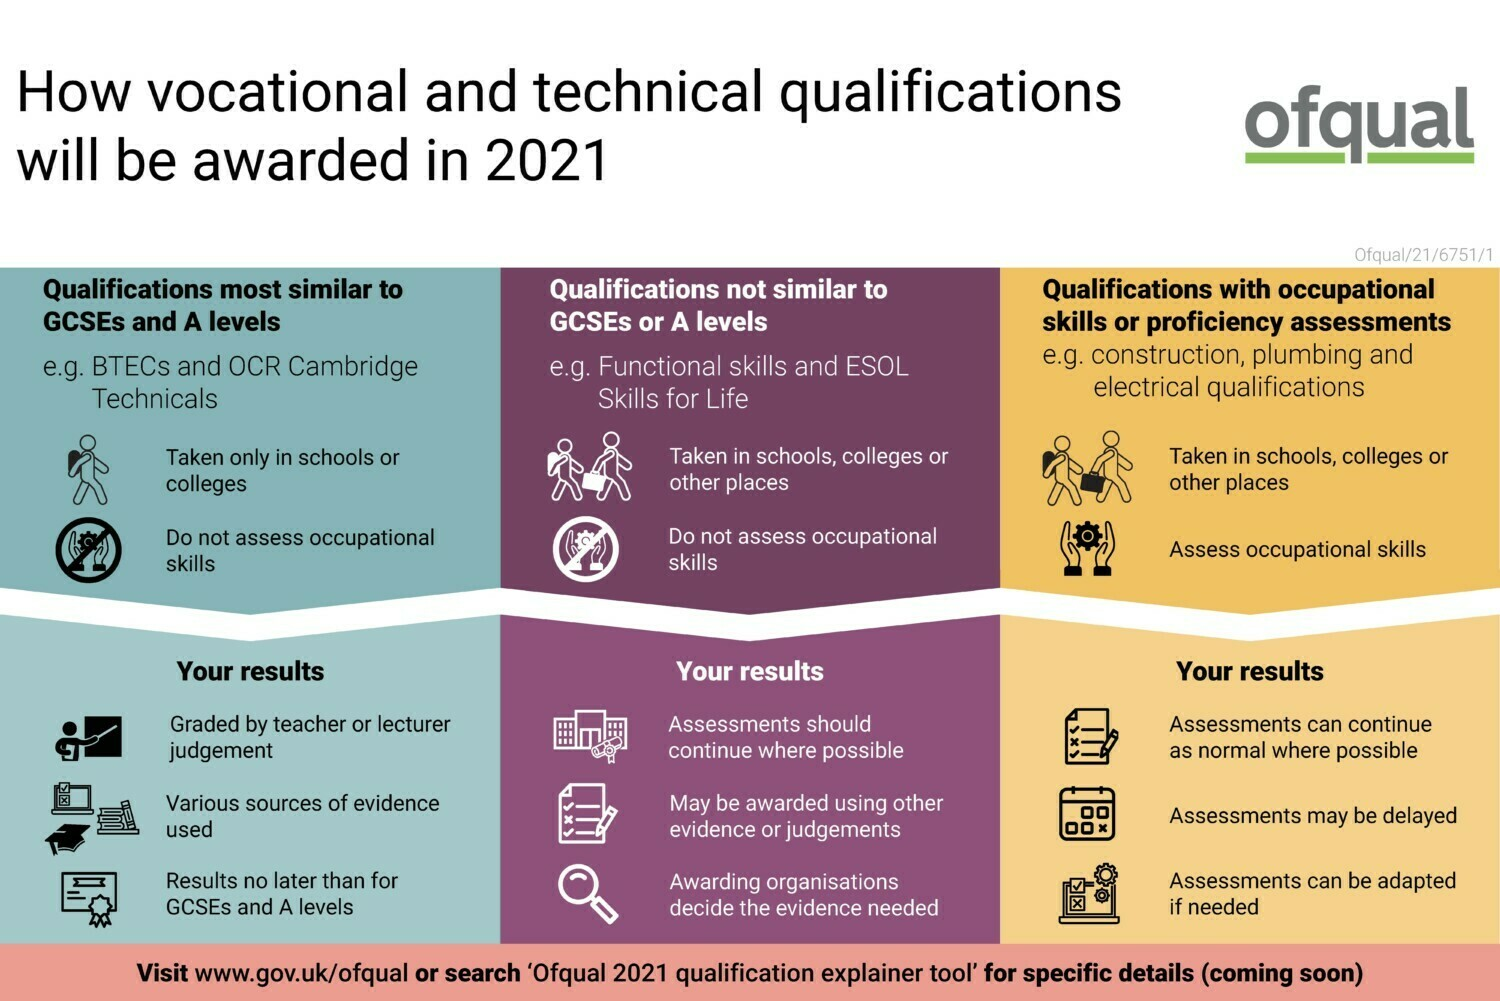 How vocational and technical qualifications will be awarded in 2021